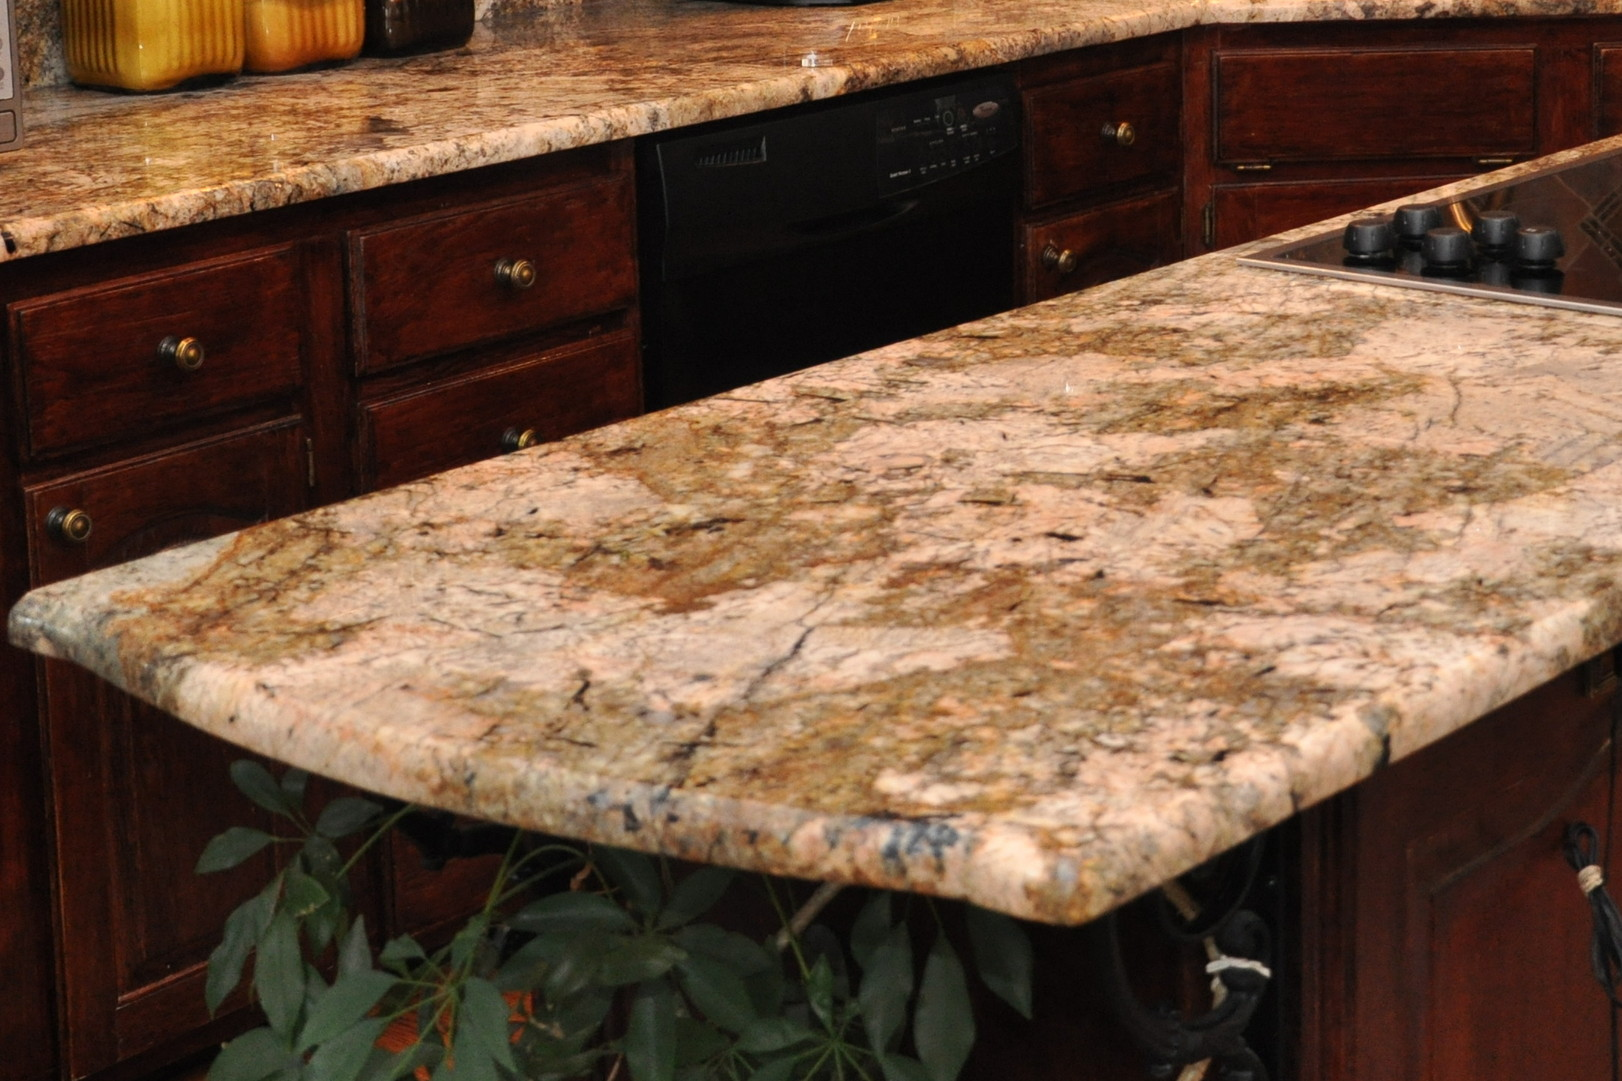 kitchen cabinetry gallery with Granite Edges on Modern Kitchens Houzz as well Granite as well Metal Building Homes further Kitchen Backsplashes With White Cabi s Design furthermore wood Hood.